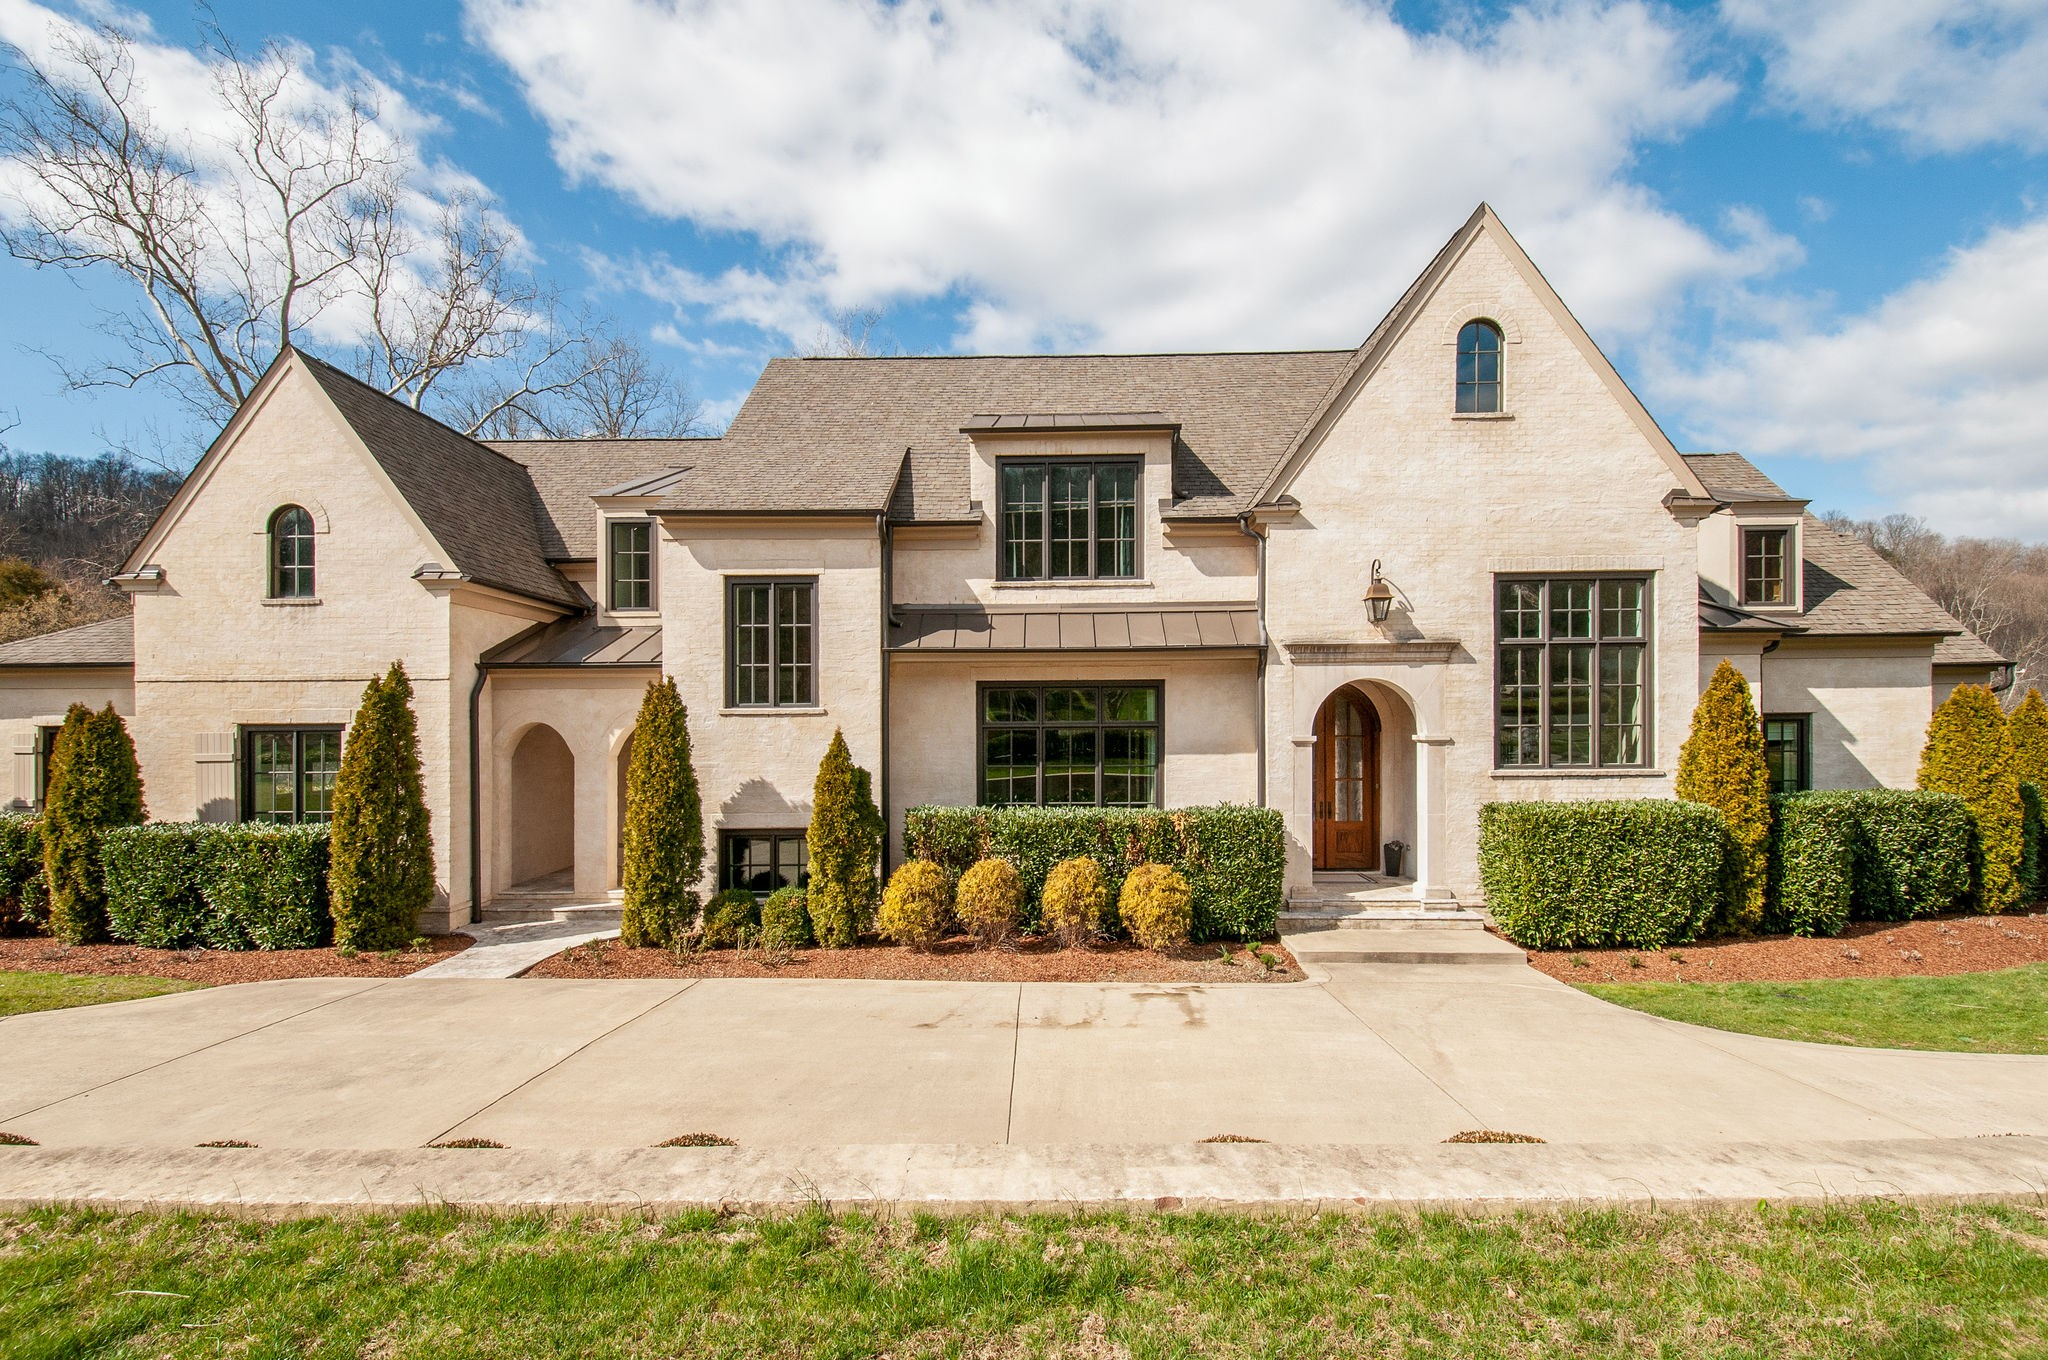 823 Windstone Blvd, Brentwood, TN 37027 - Brentwood, TN real estate listing